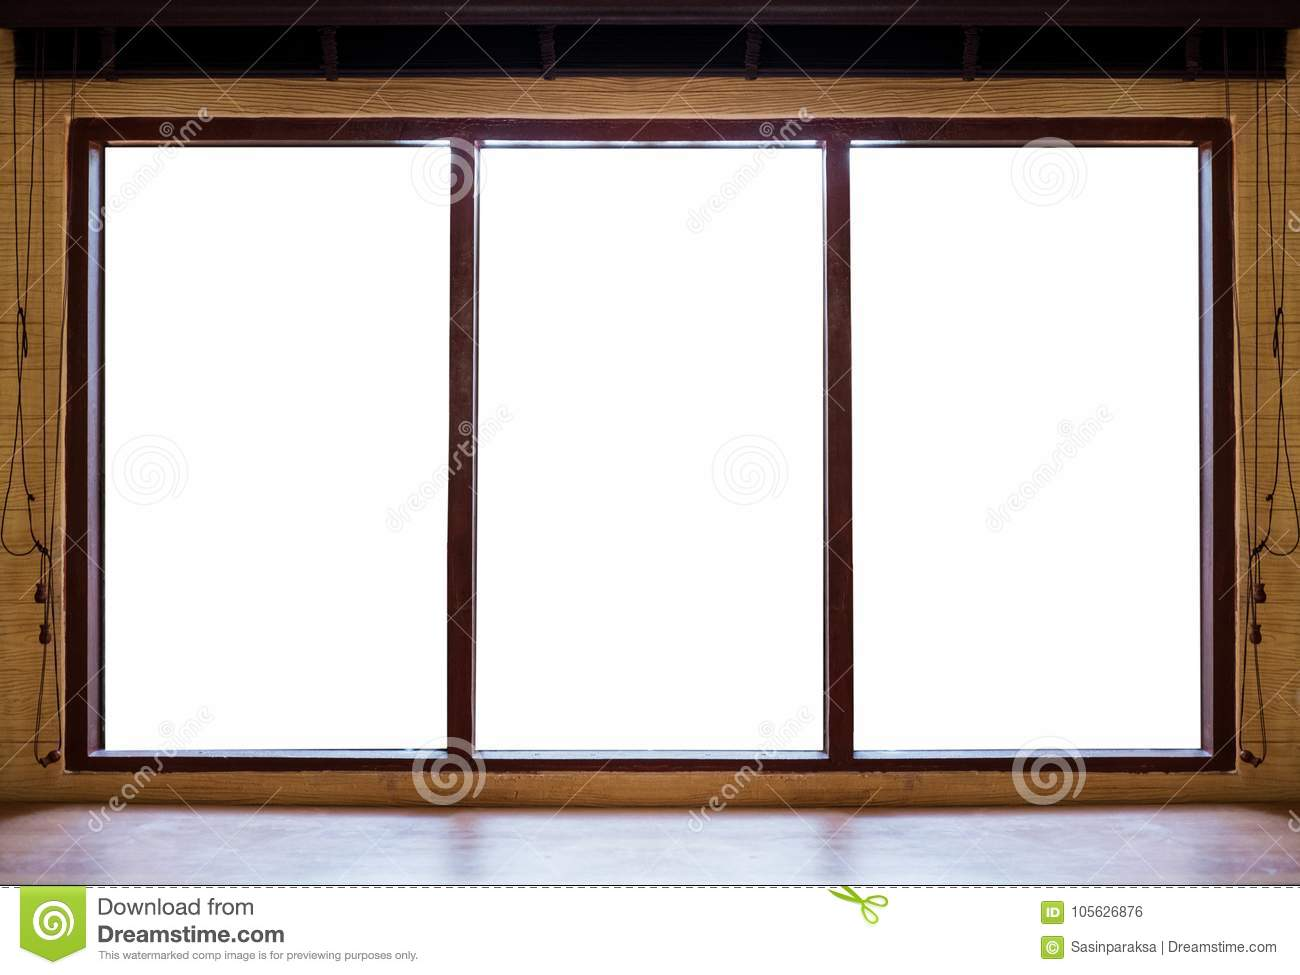 Wooden Window Frames With Desk, On White Background Stock Photo ...